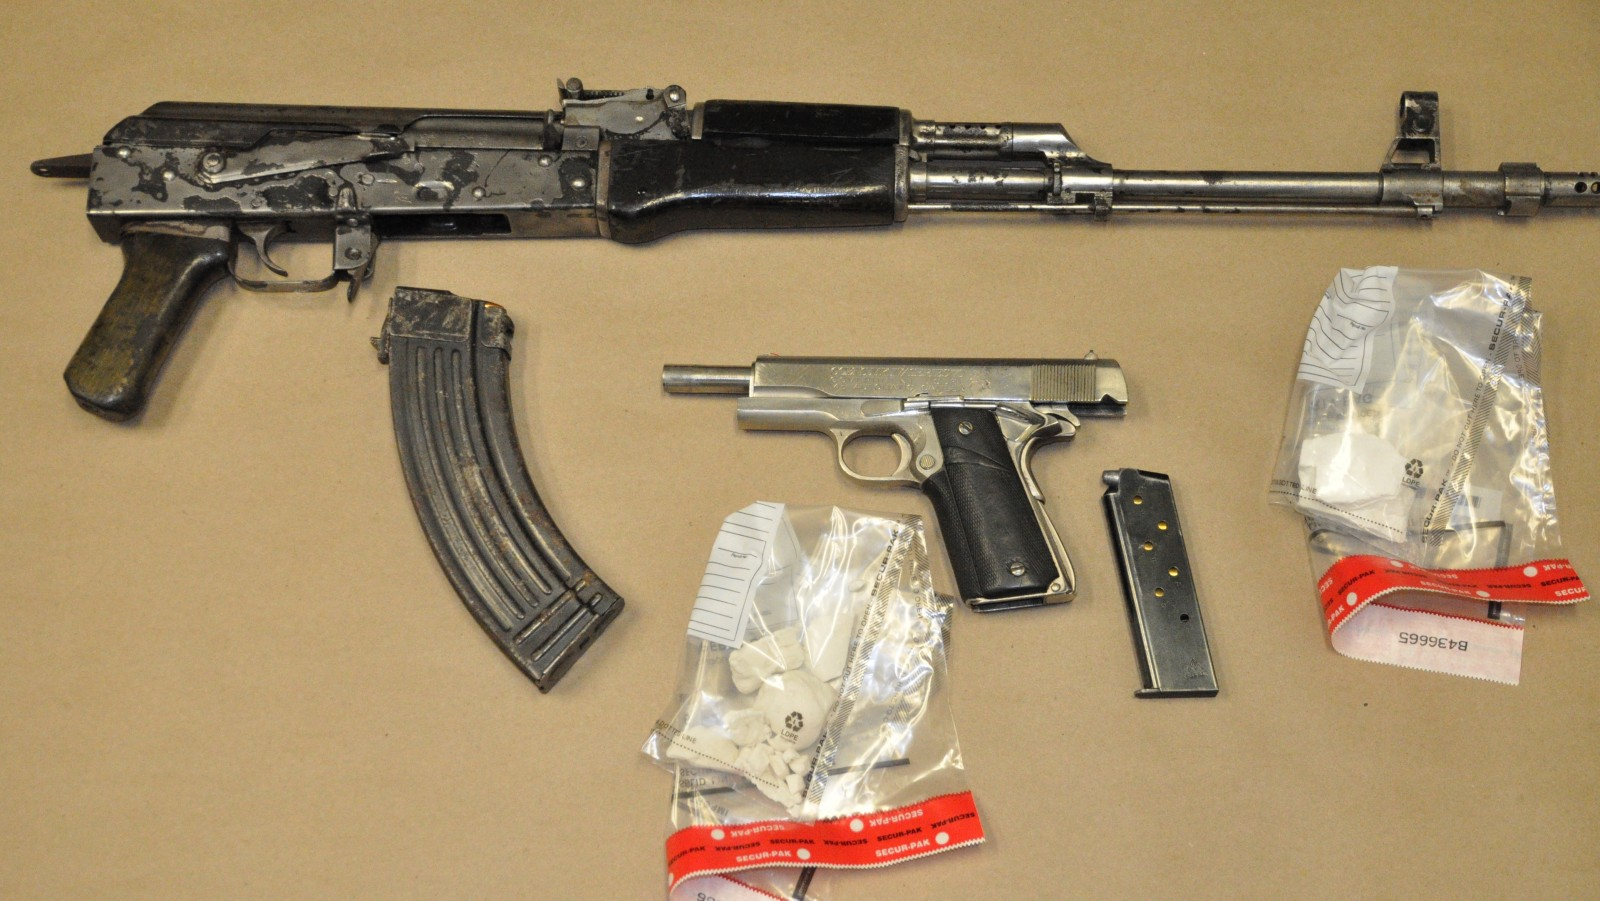 Two guns, nearly $10,000 worth of cocaine seized by London police